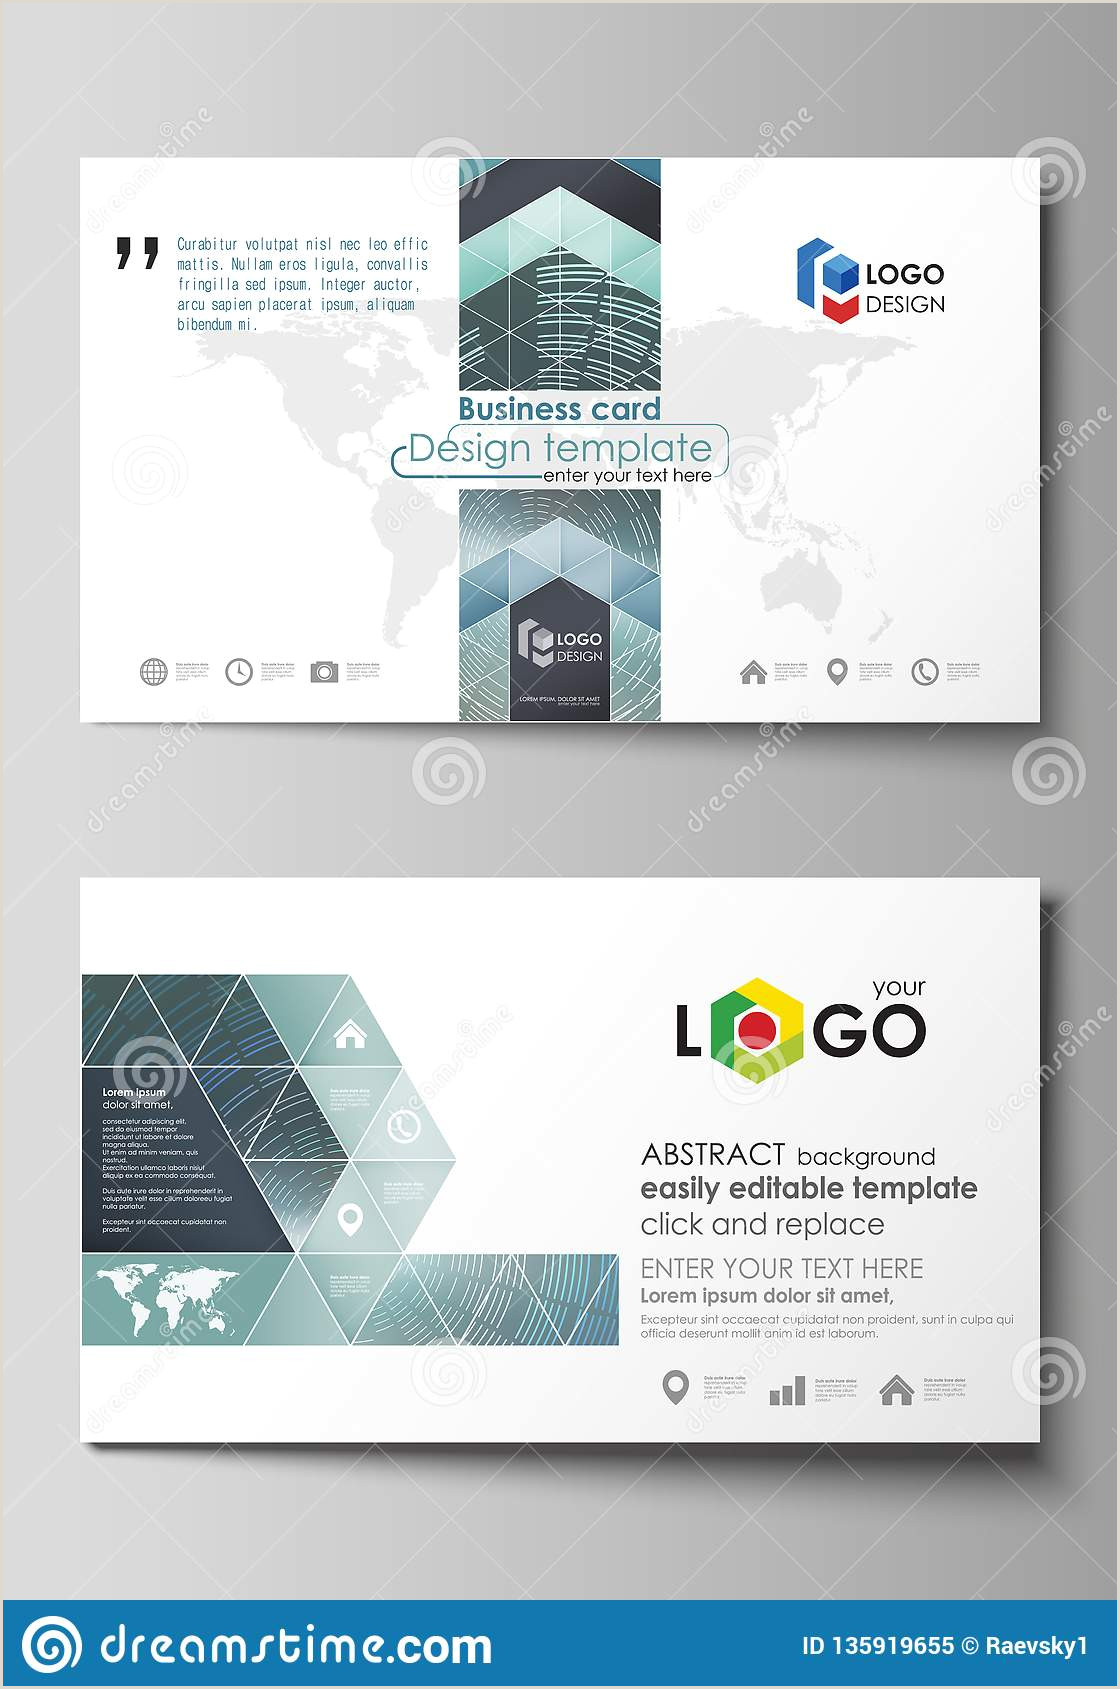 How To Make Bussiness Cards Business Card Templates Easy Editable Layout Abstract